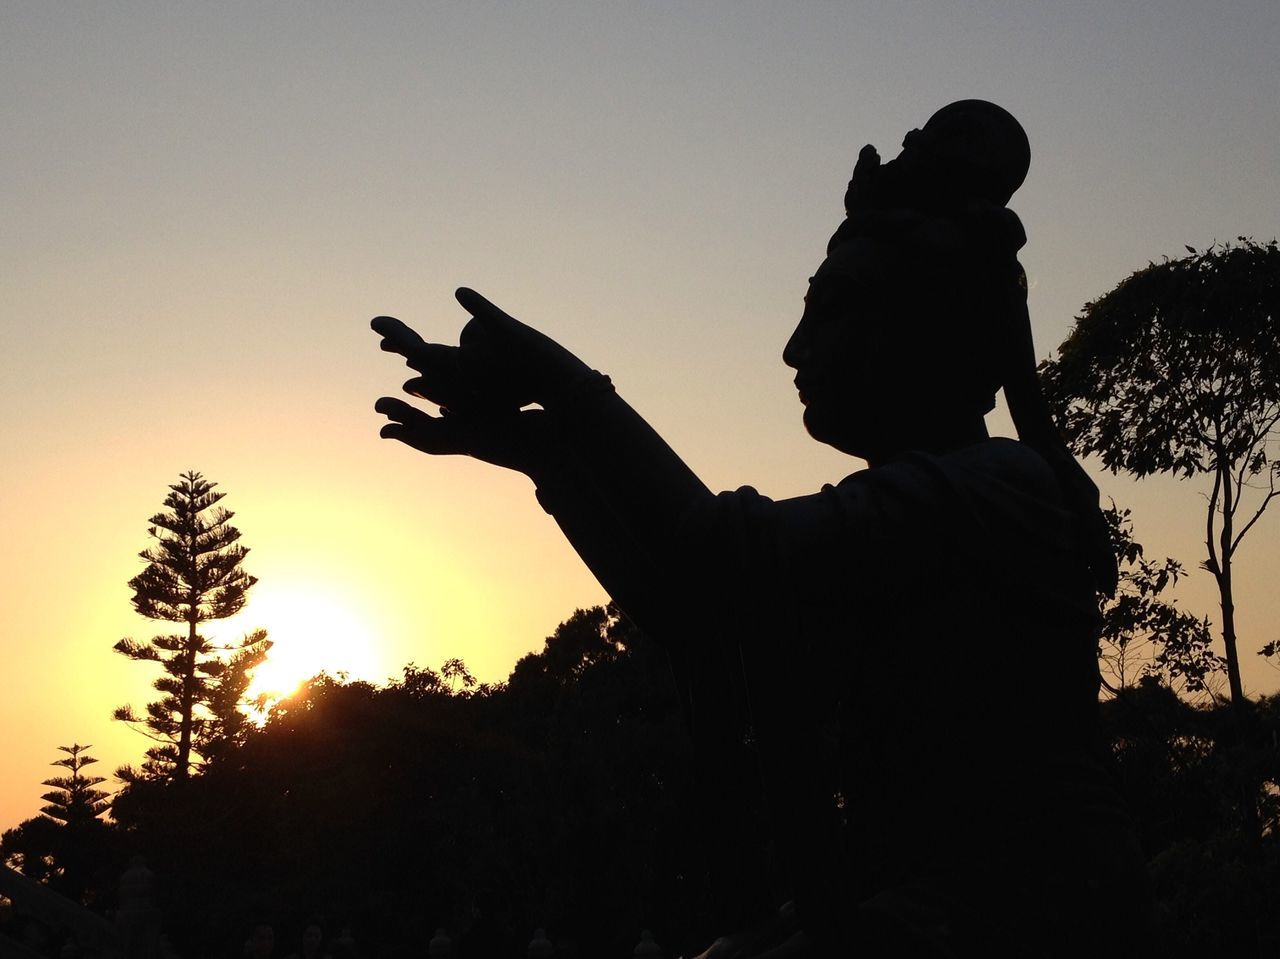 silhouette, sunset, one person, sky, outdoors, nature, real people, childhood, men, clear sky, one man only, human hand, mammal, people, day